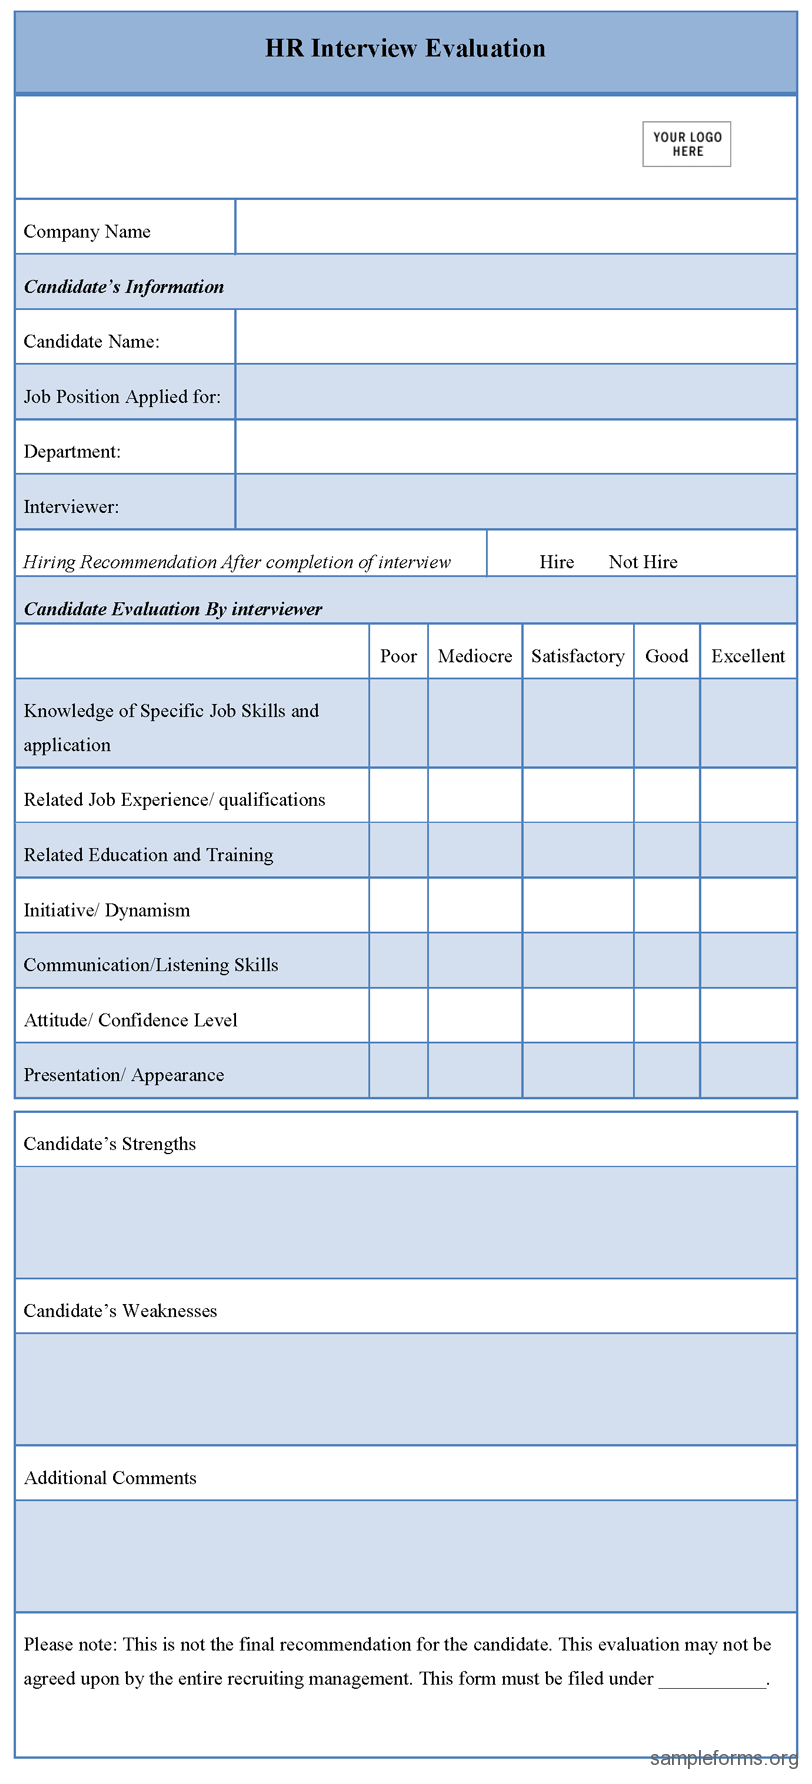 HR Interview Assessment Form forms Pinterest – Interview Evaluation Form